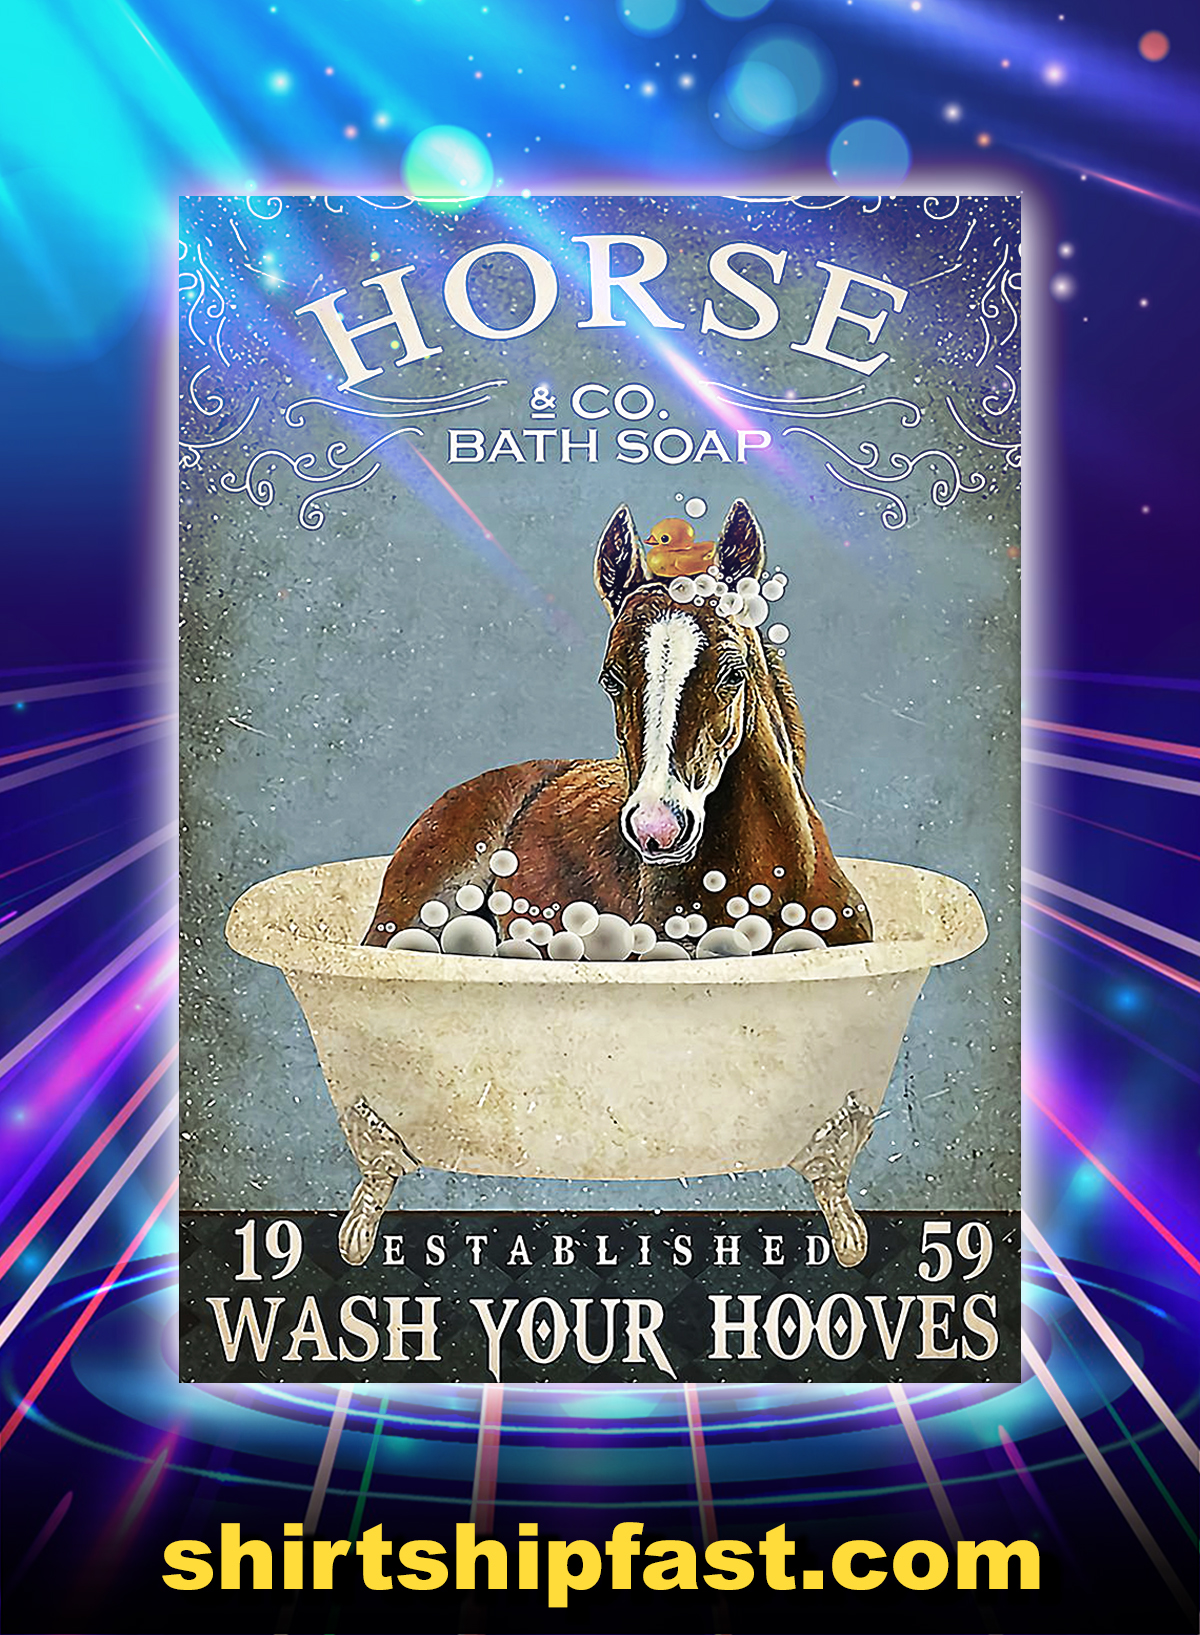 Horse co bath soap wash your hooves poster - A4